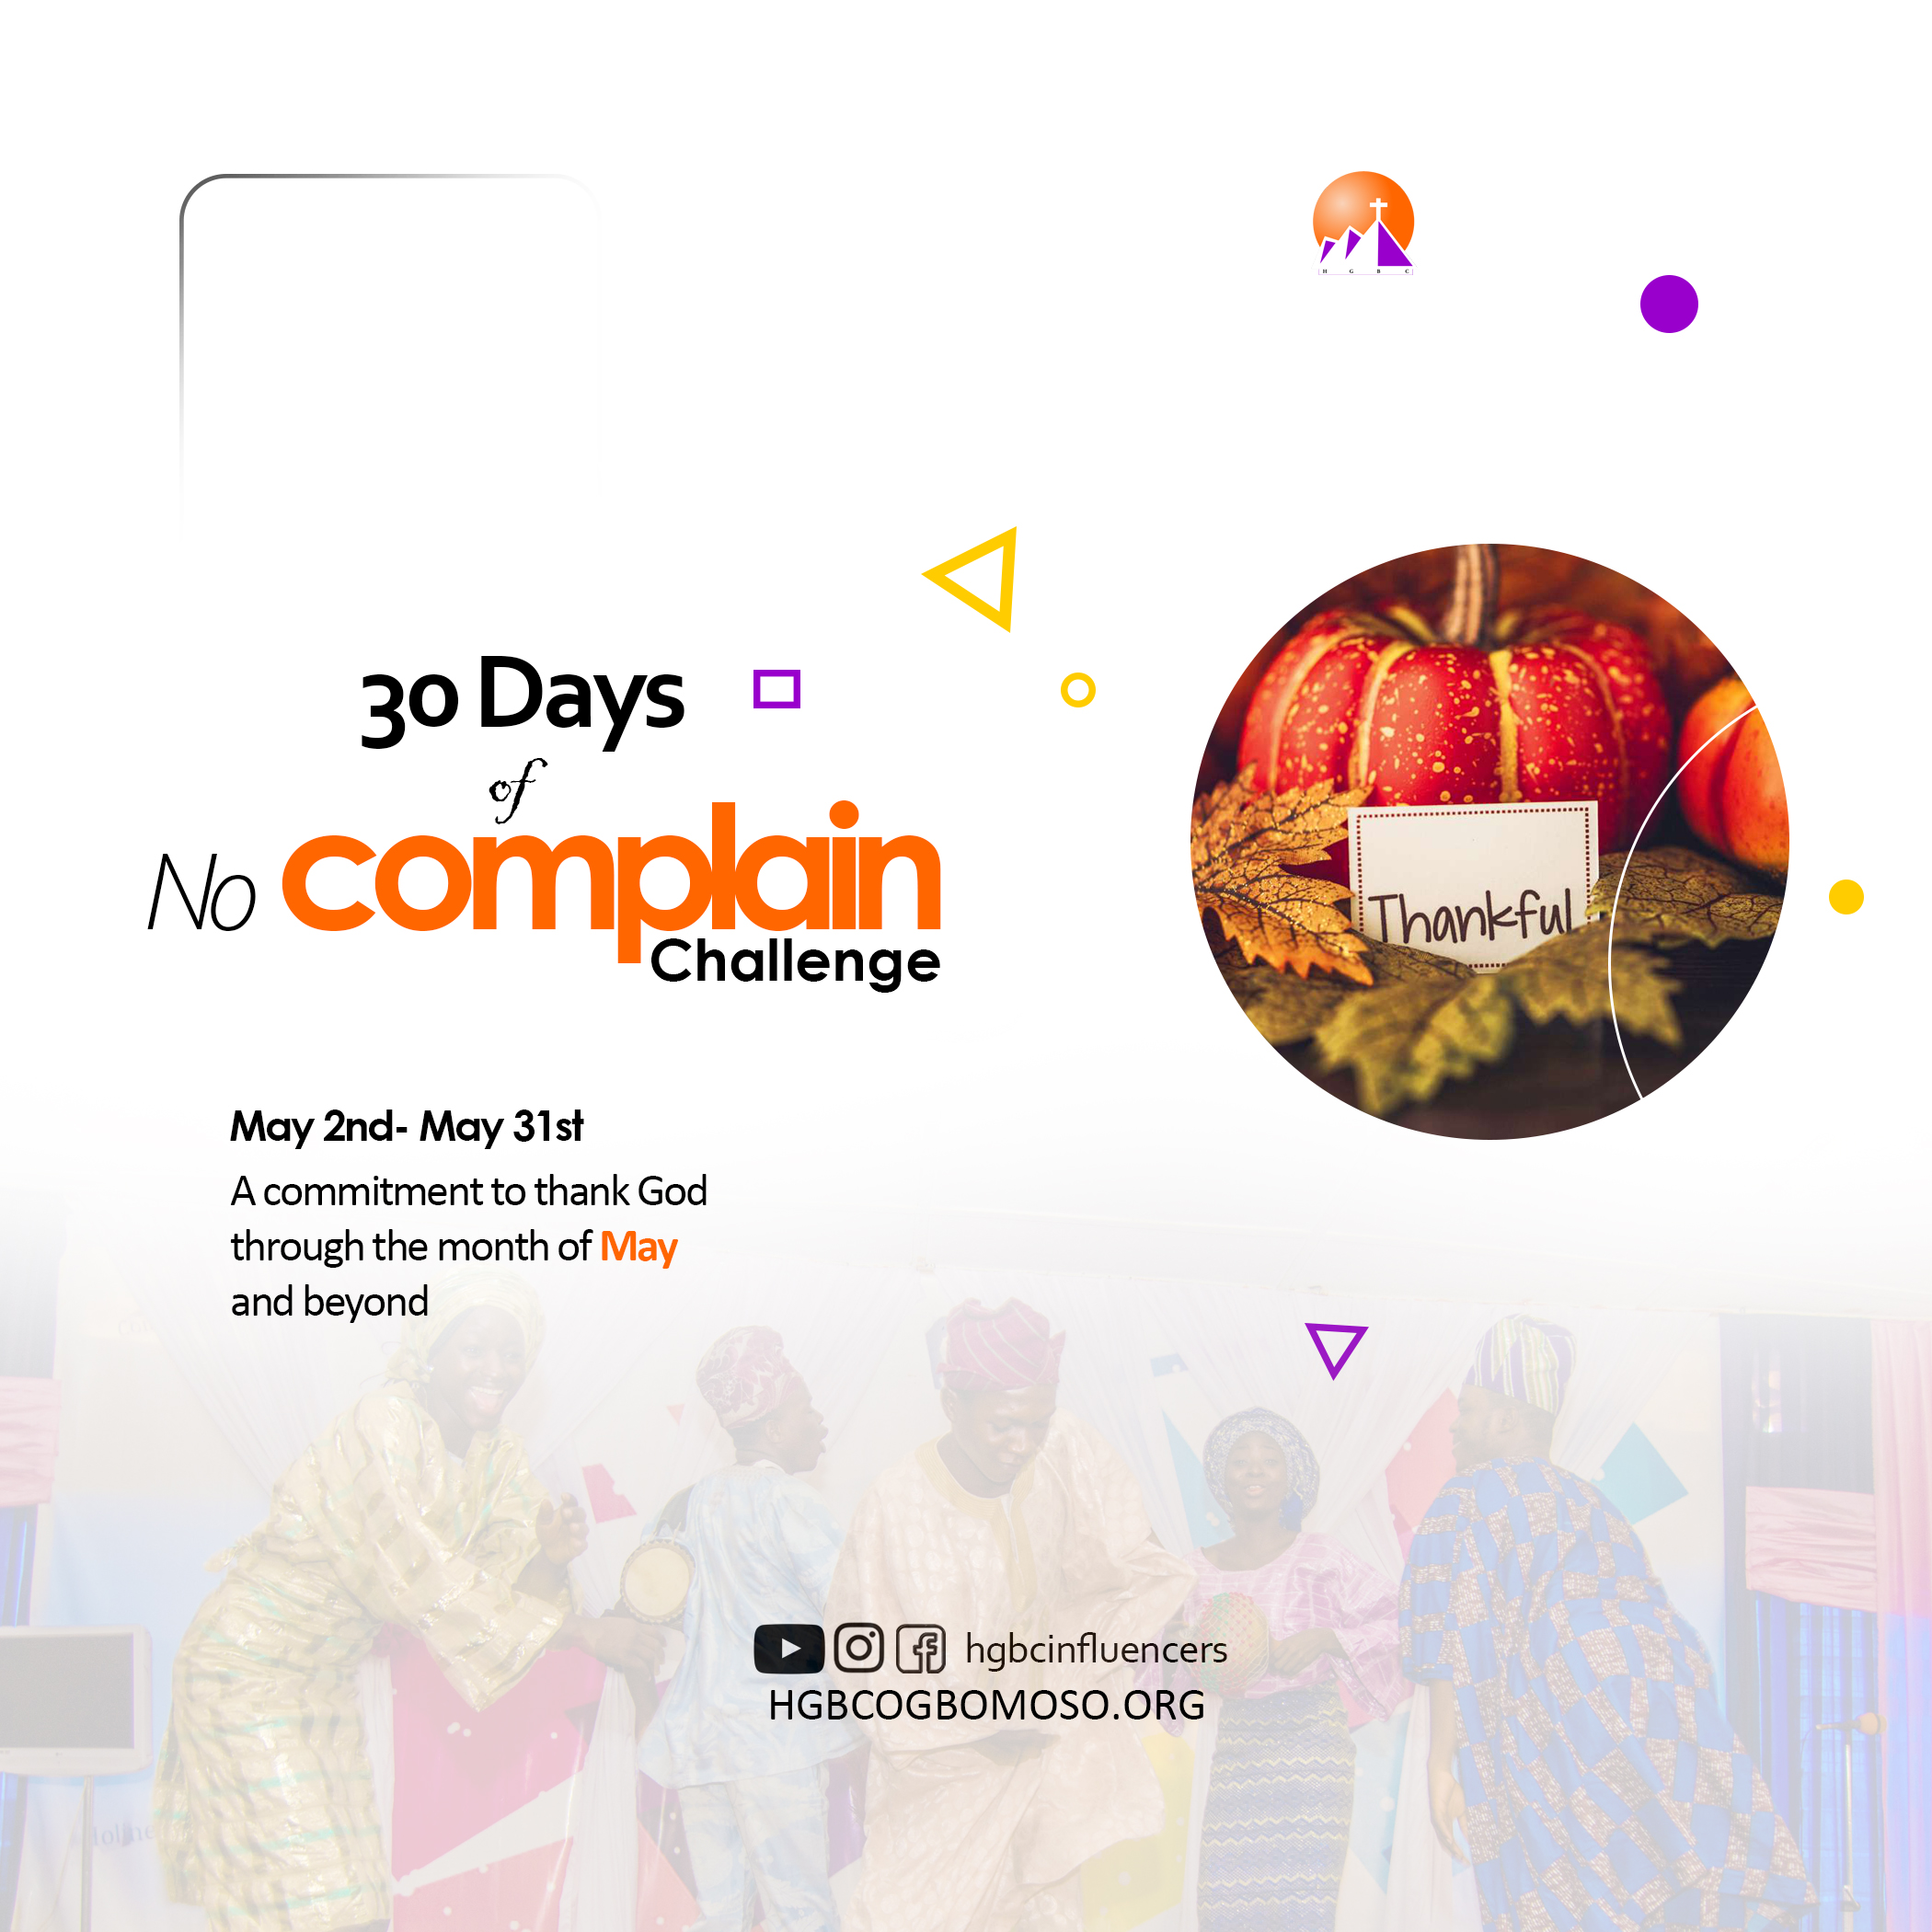 30 Days of No Complain Challenge